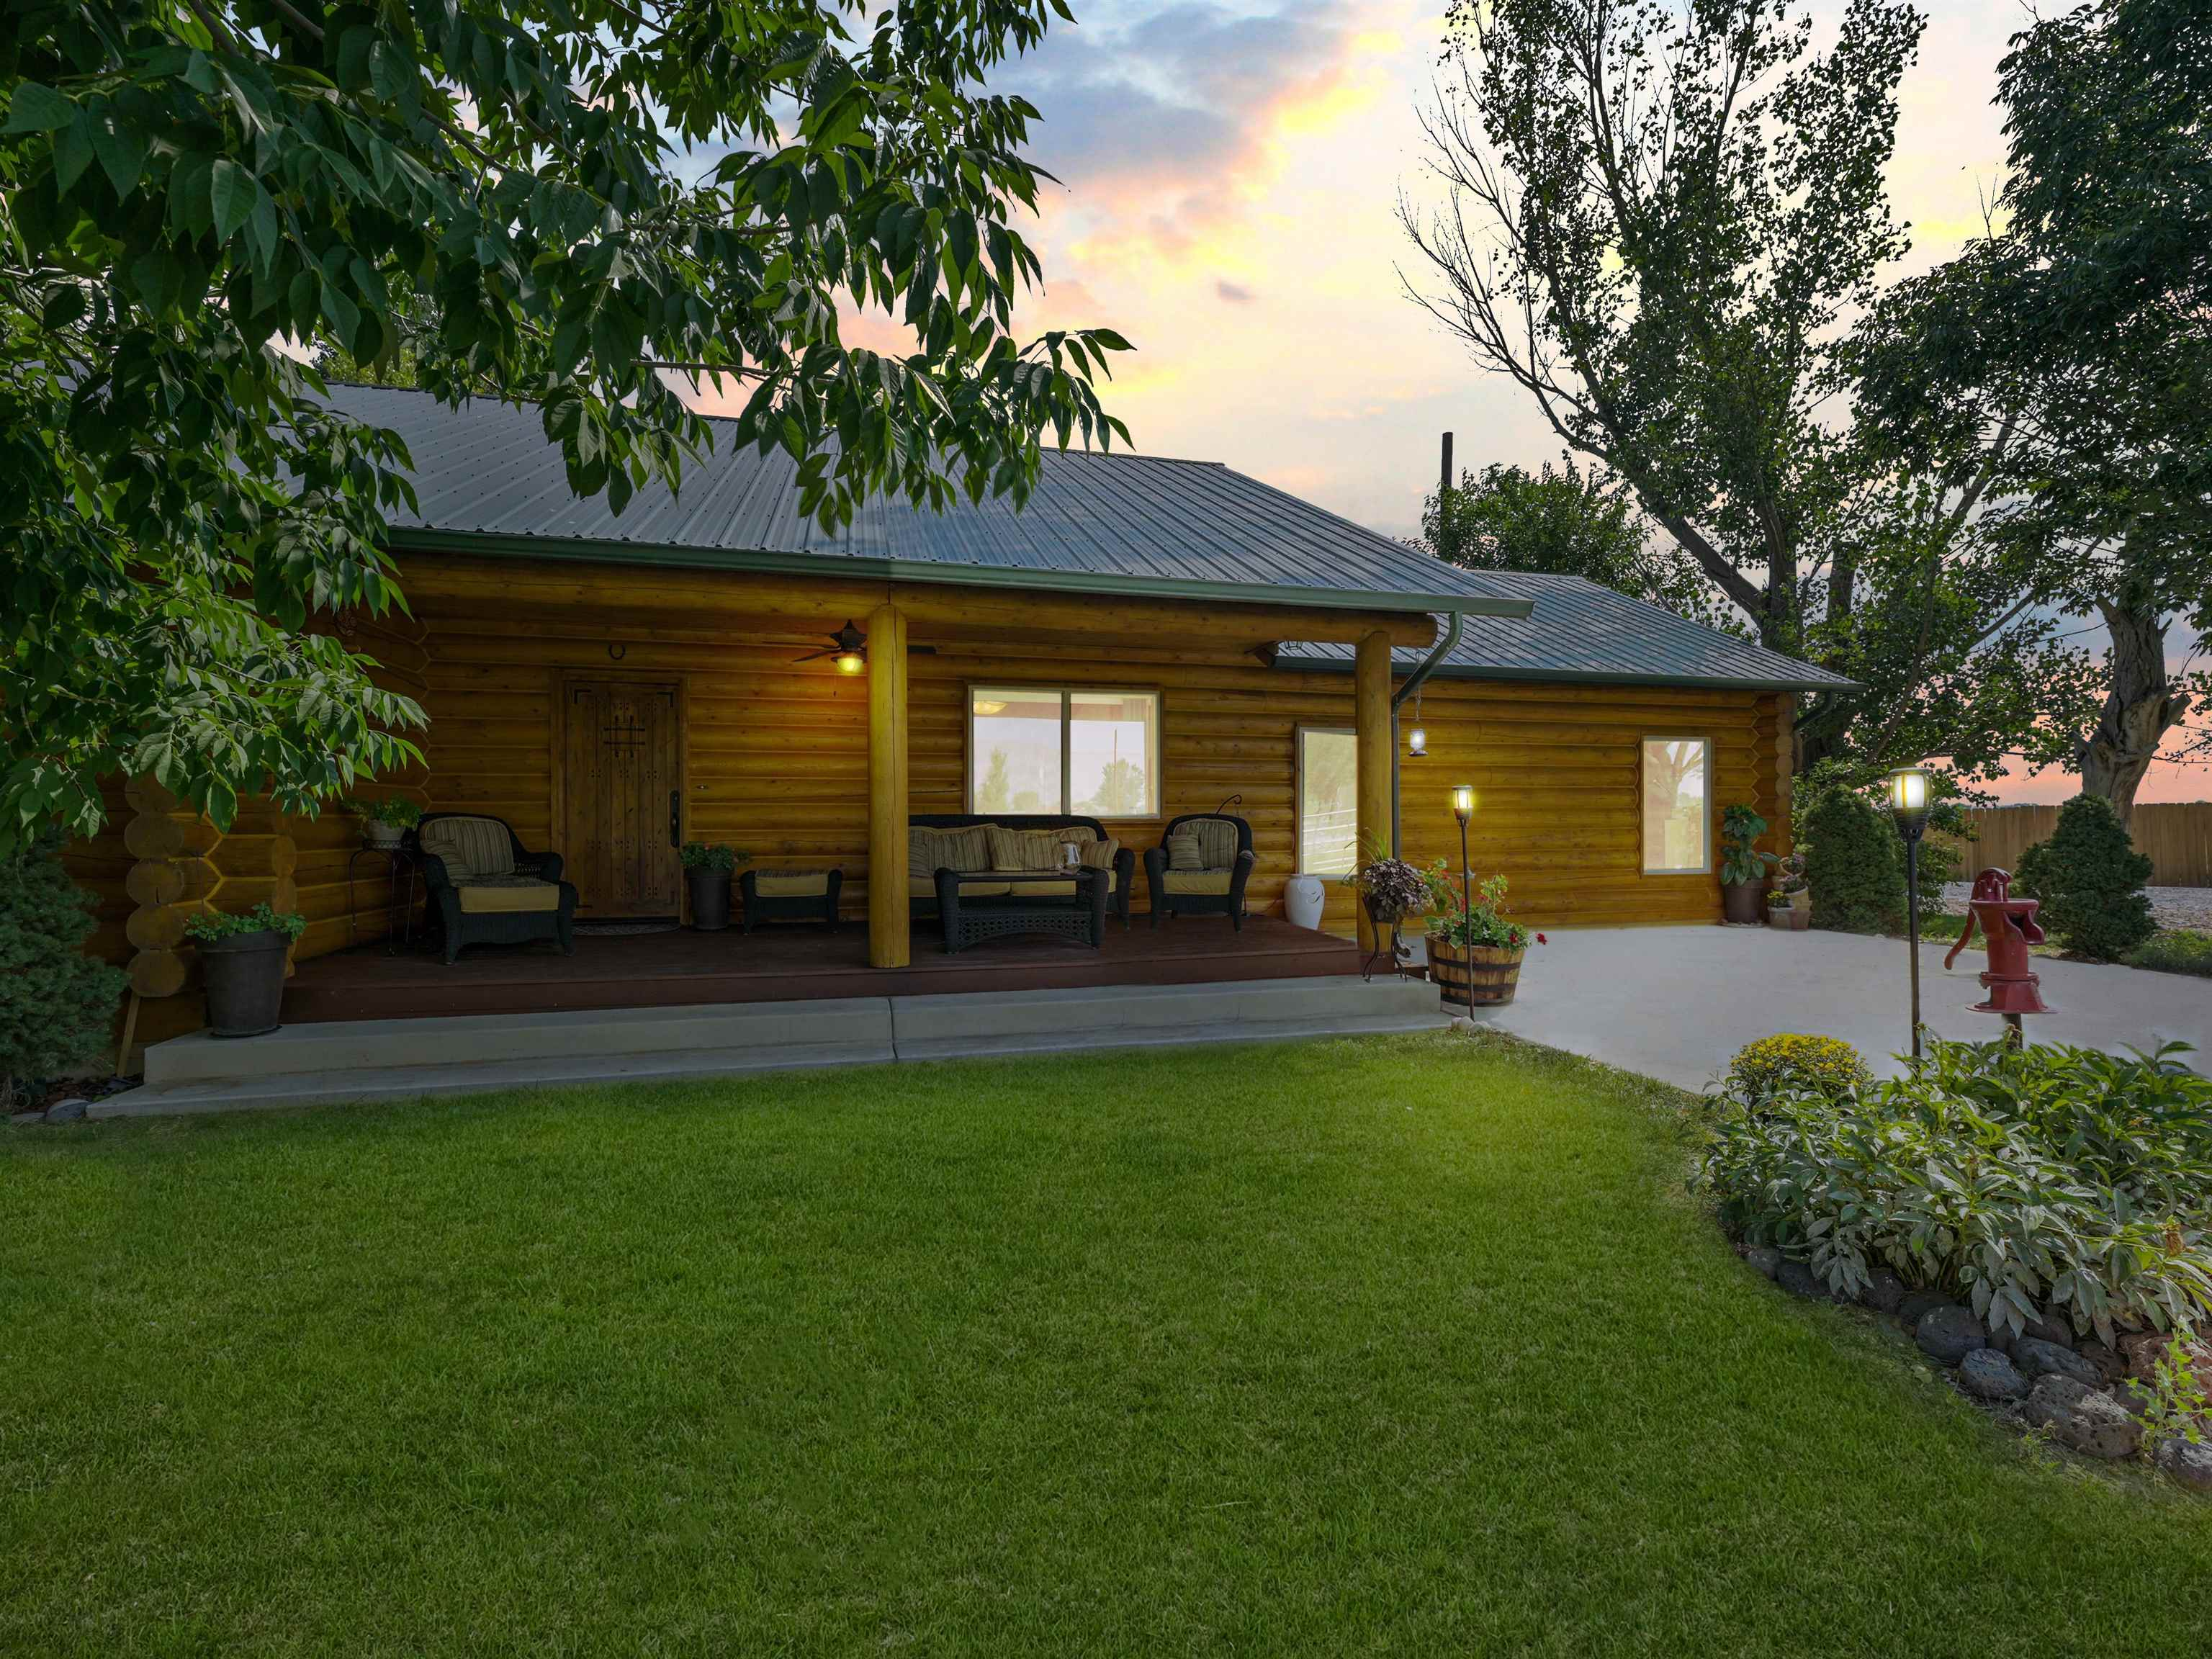 Don't miss this riverfront property & Western Colorado country living opportunity! The back porch overlooks your own private pond & the Colorado River. The front has views of Mt Garfield & the Bookcliffs. There is private access to the Colorado River & nearly 10 acres of land for horses, hobby farm, crops, garden, toys, RVs & more. This property also sits right on the Palisade Wine Tour route. The stunning log home has vaulted ceilings & plenty of windows to see views of the Grand Mesa & Colorado National Monument. The master suite has a private patio, floor-to-ceiling windows, walk-in closet & 5-piece bath. Secondary bedrooms are junior suites. Both uncovered & covered patios are out back & a covered deck in front. The pond is stocked for fishing & the oversized garage is insulated with 220 power. This location is close to both Grand Junction & Palisade. Book your private tour today!